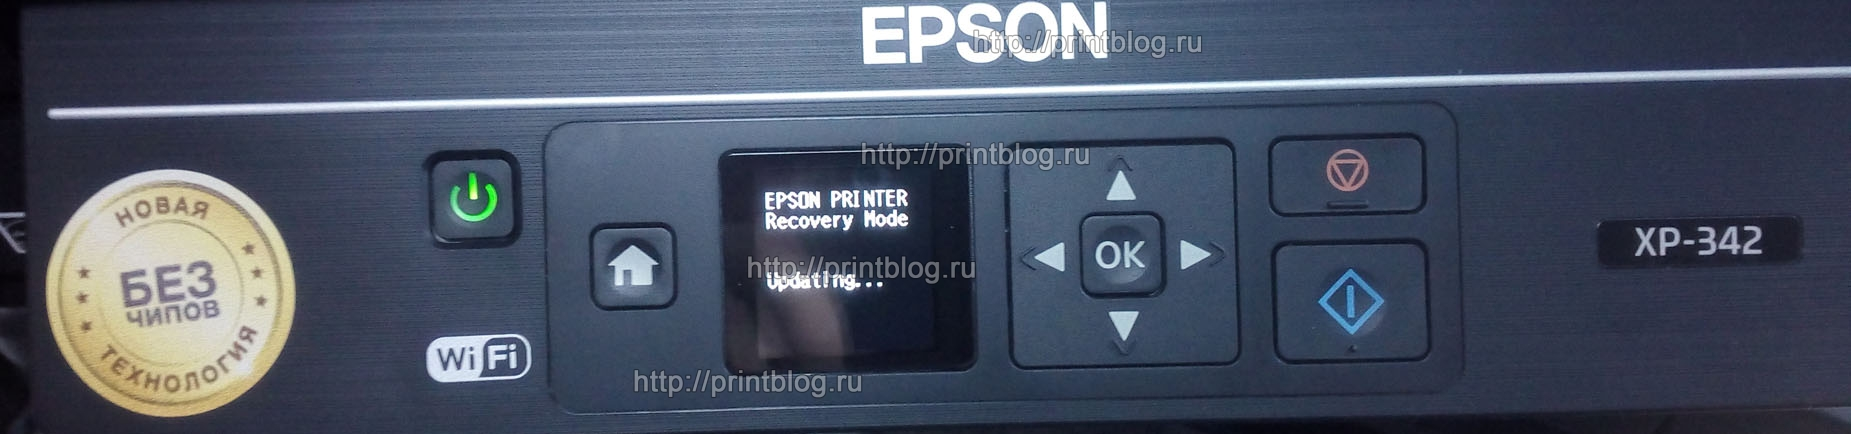 Epson XP-342 EPSON PRINTER Recovery mode